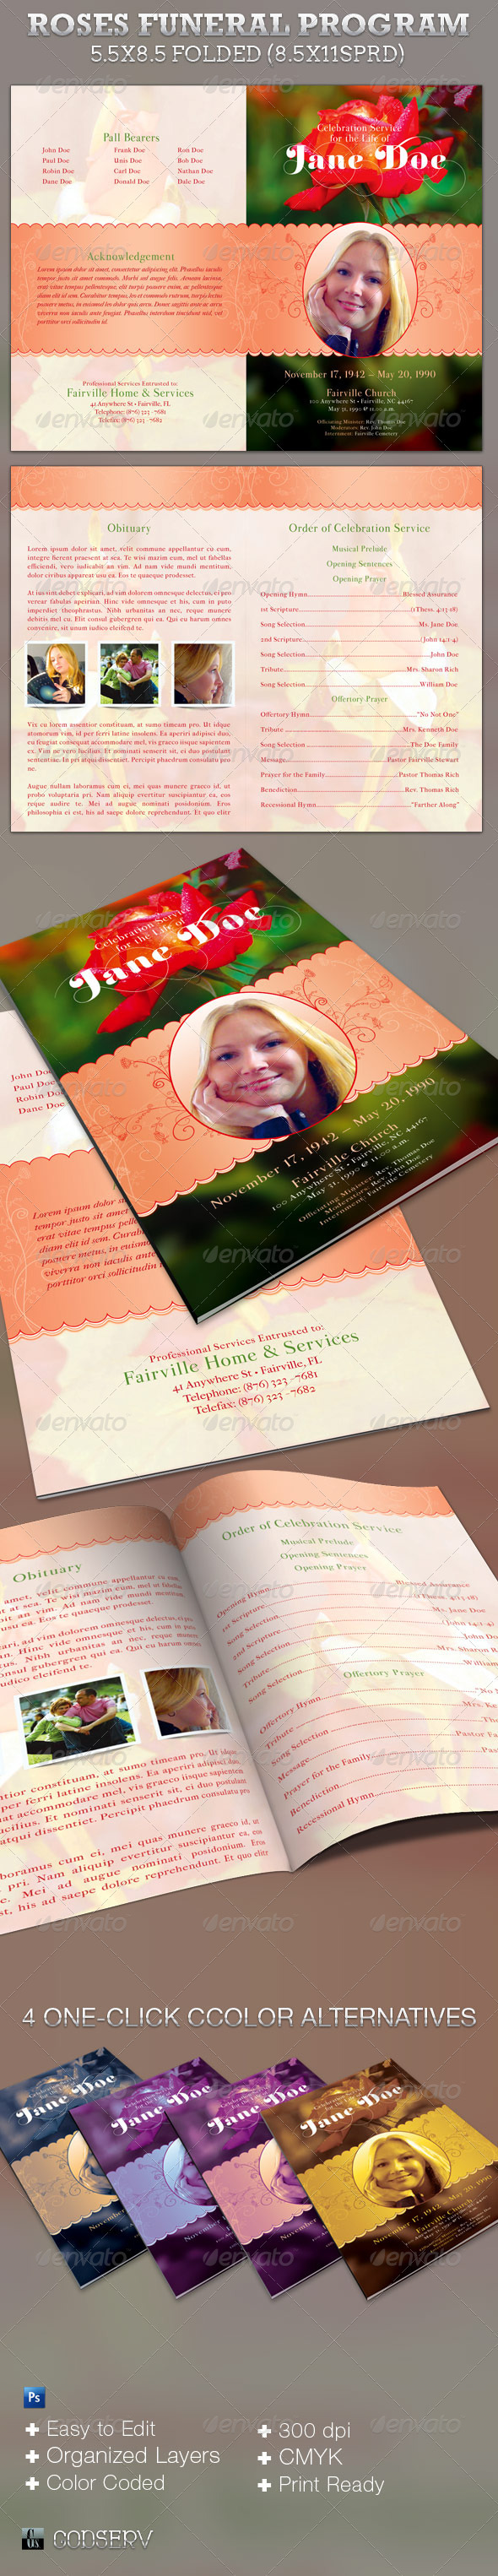 Roses Funeral Program Template - Informational Brochures